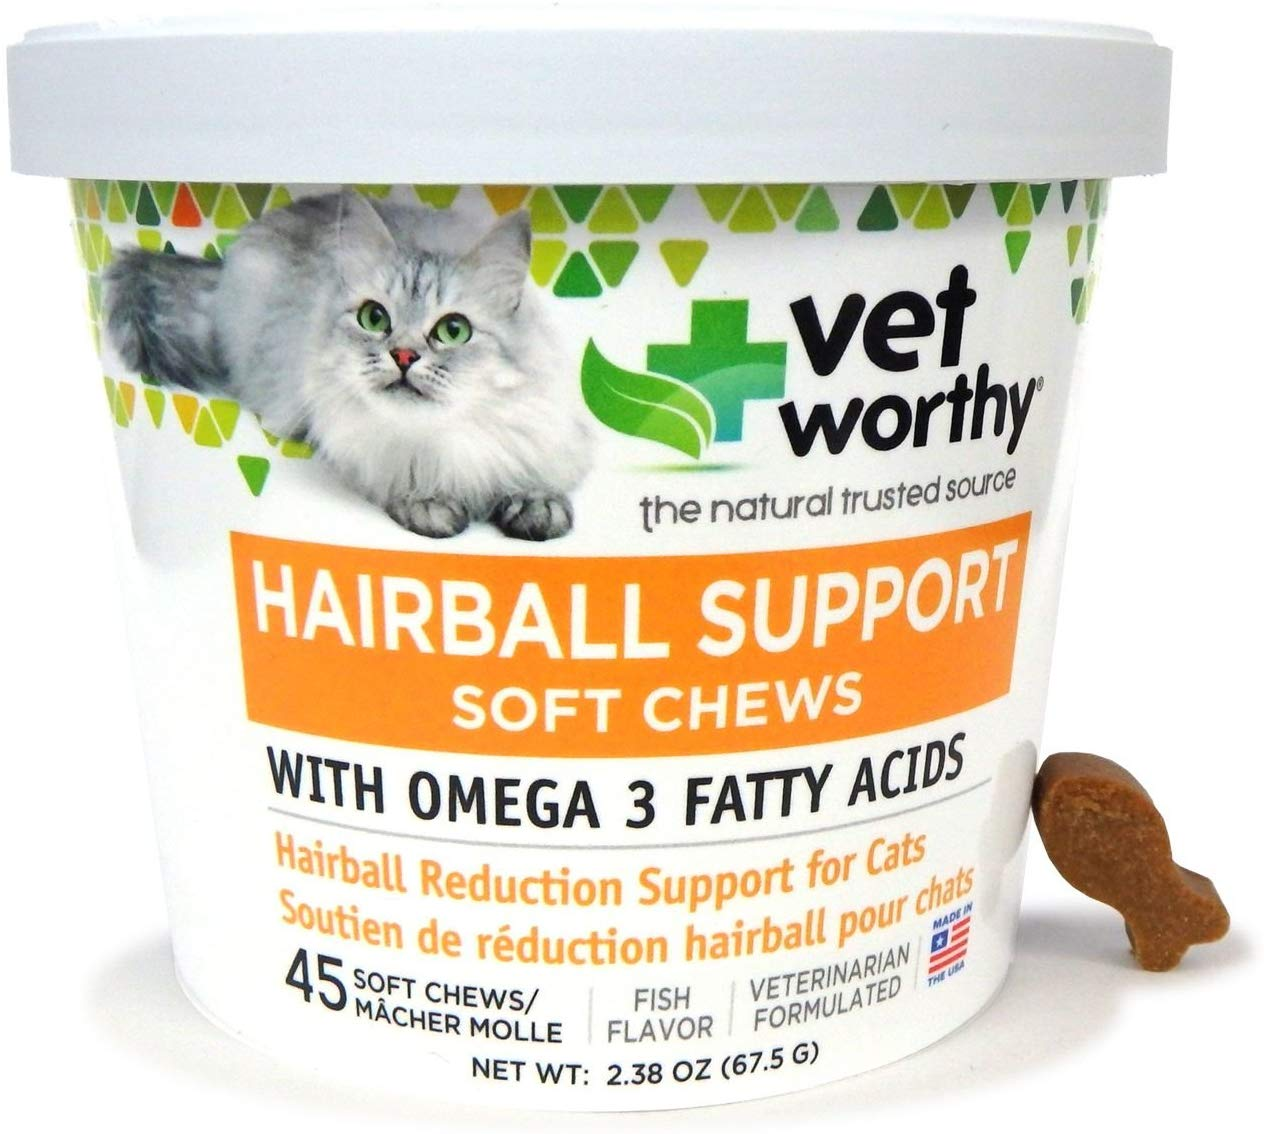 Vet Worthy Hairball Support Cat Soft Chews, 45-count